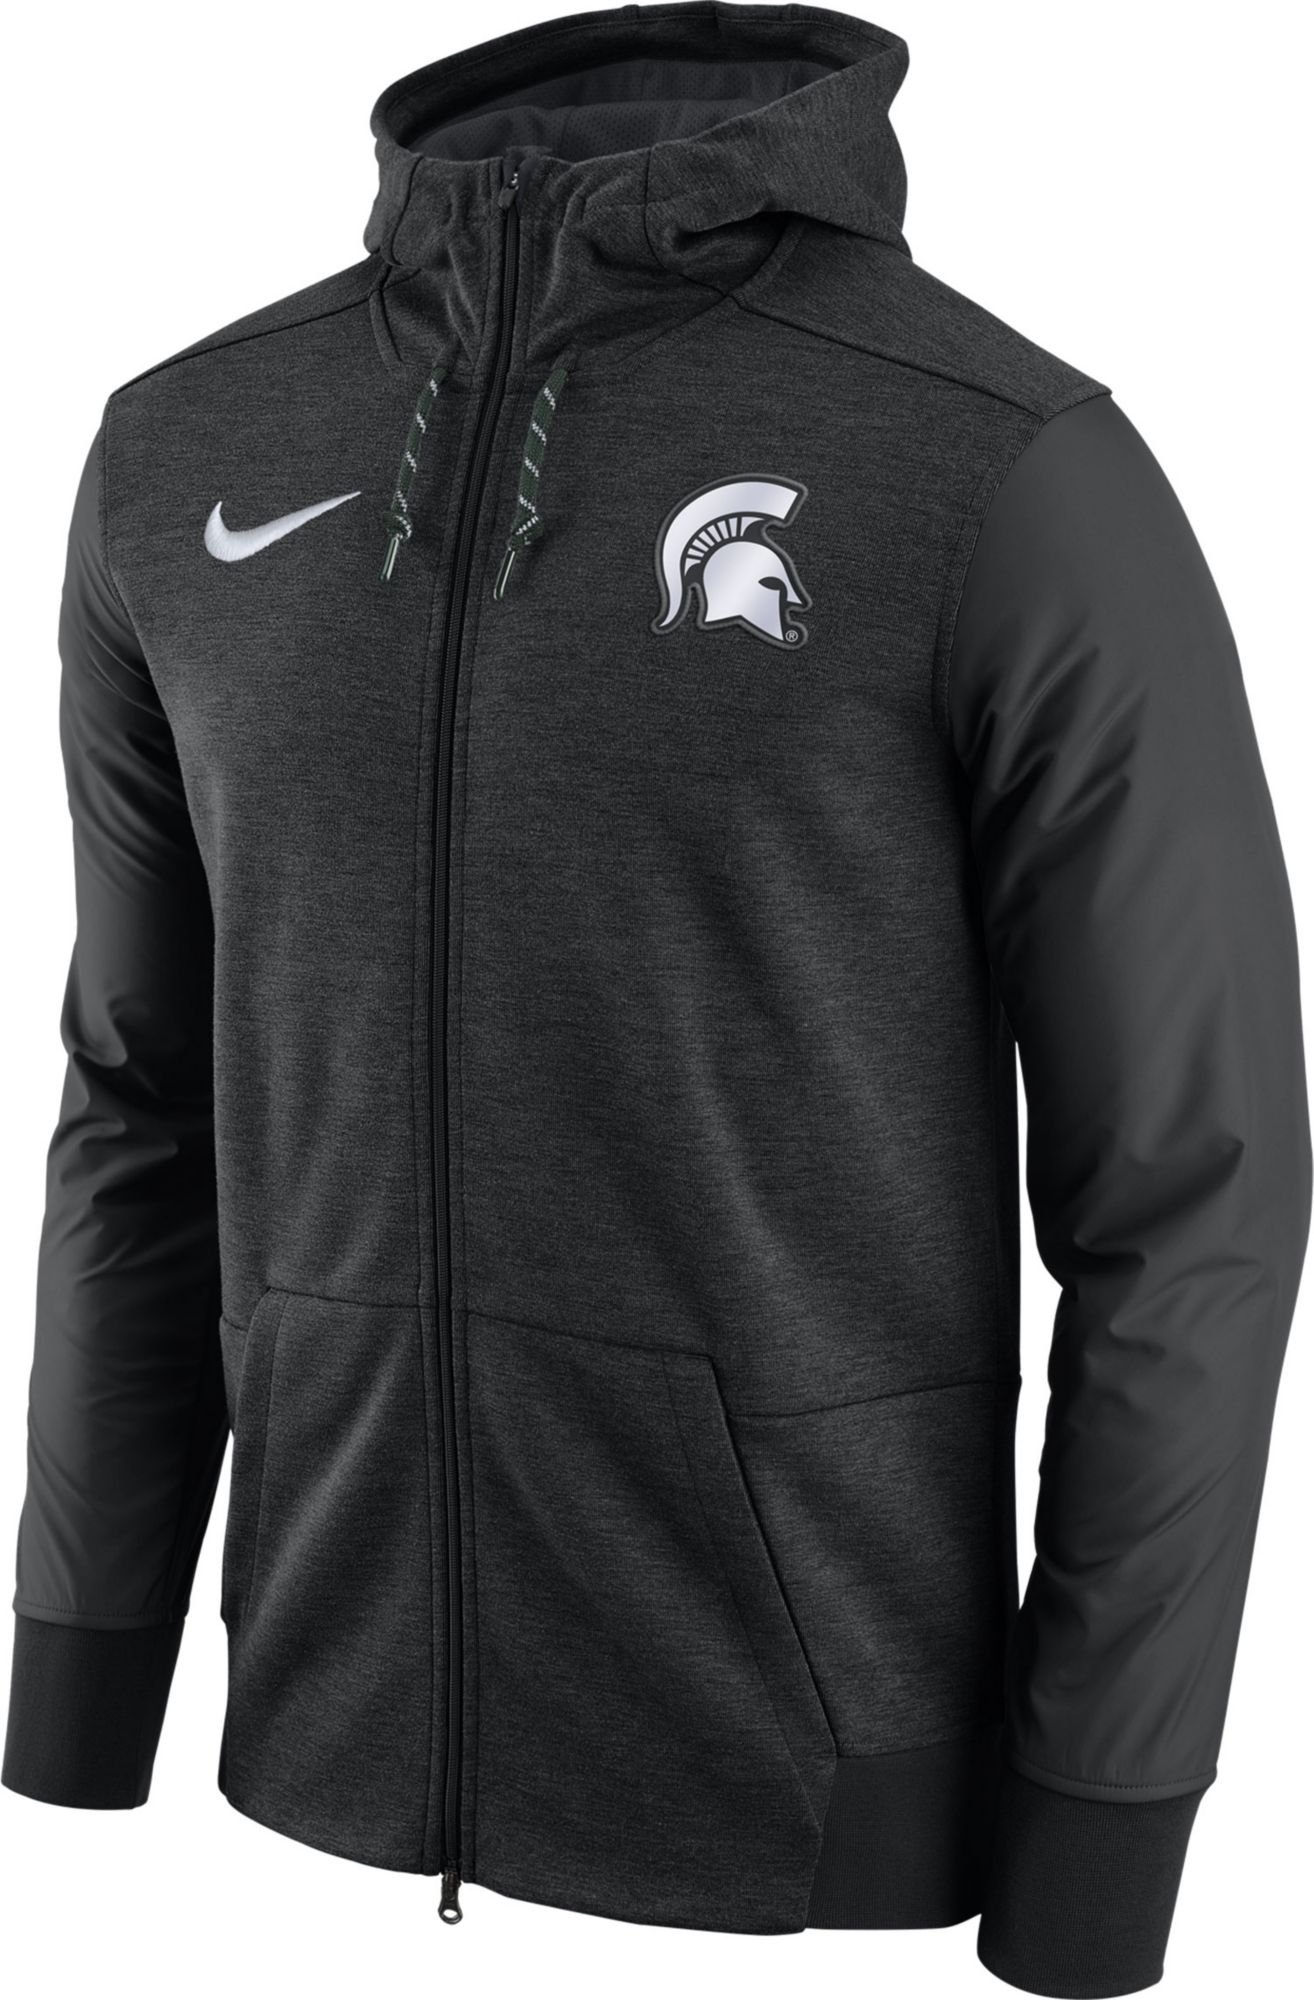 Nike Men's Michigan State Spartans Football Travel Heathered Black Full-Zip Hoodie (L) by NIKE